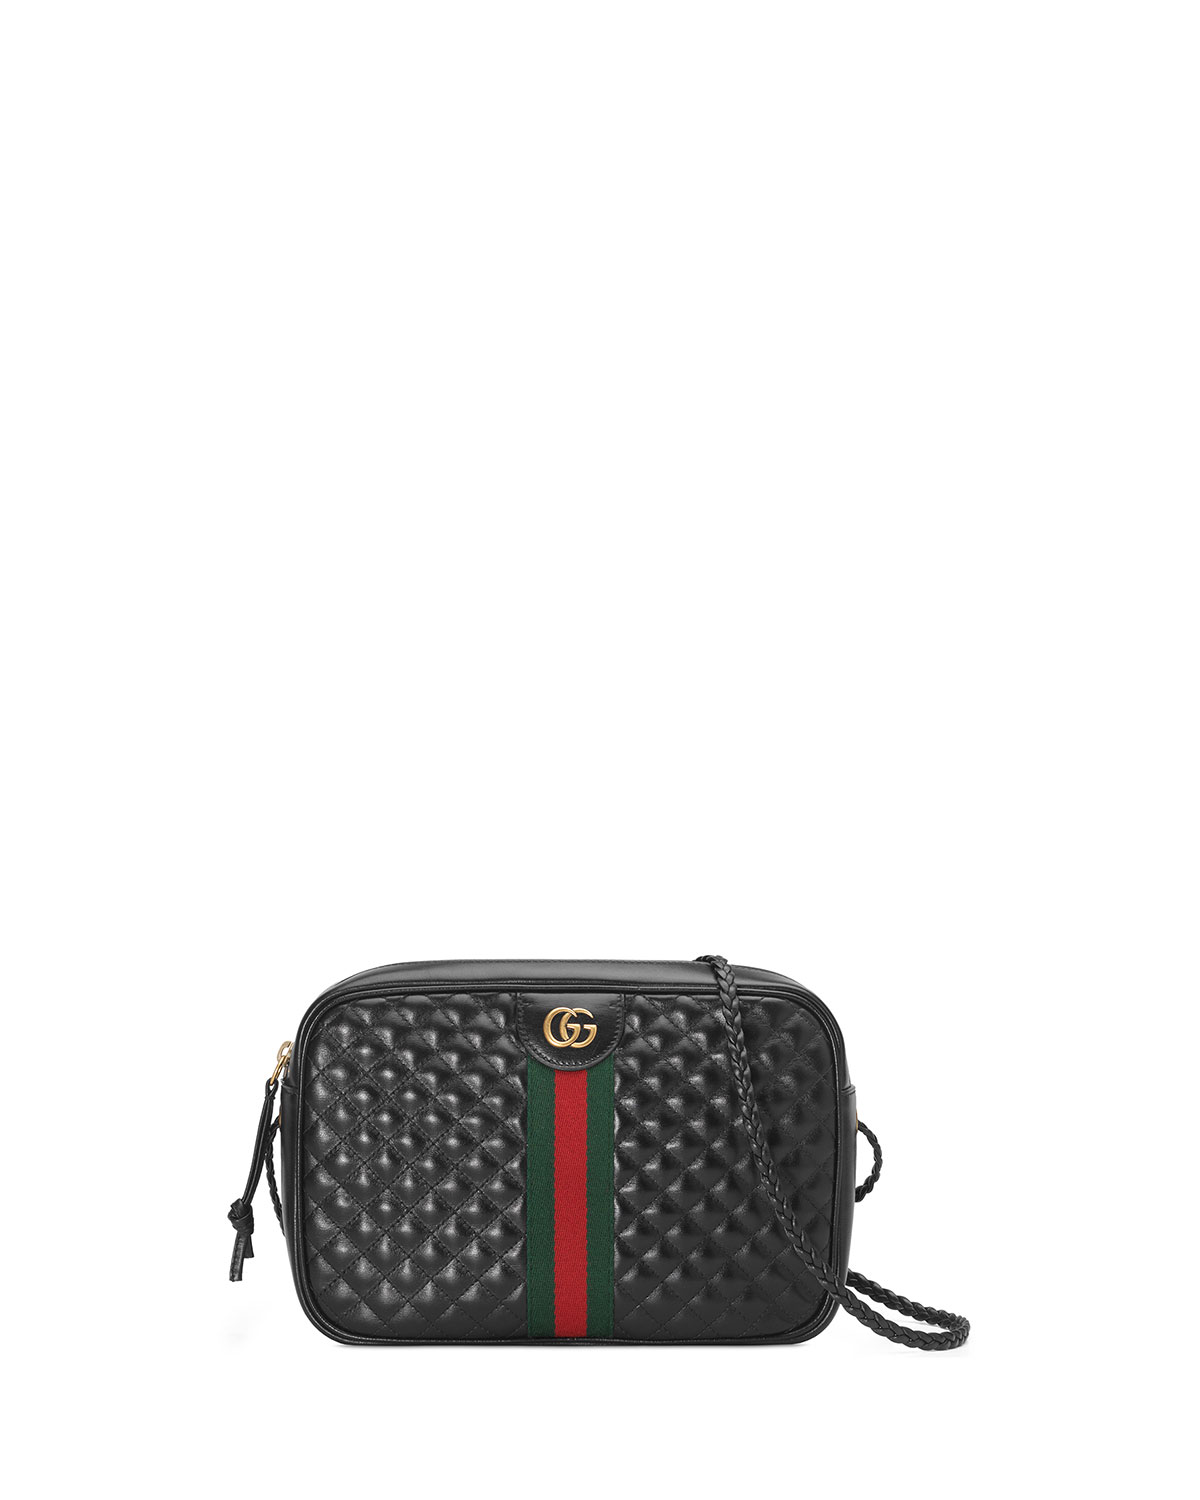 Gucci Trapuntata Small Quilted Leather Crossbody Camera Bag  439ea0442706b